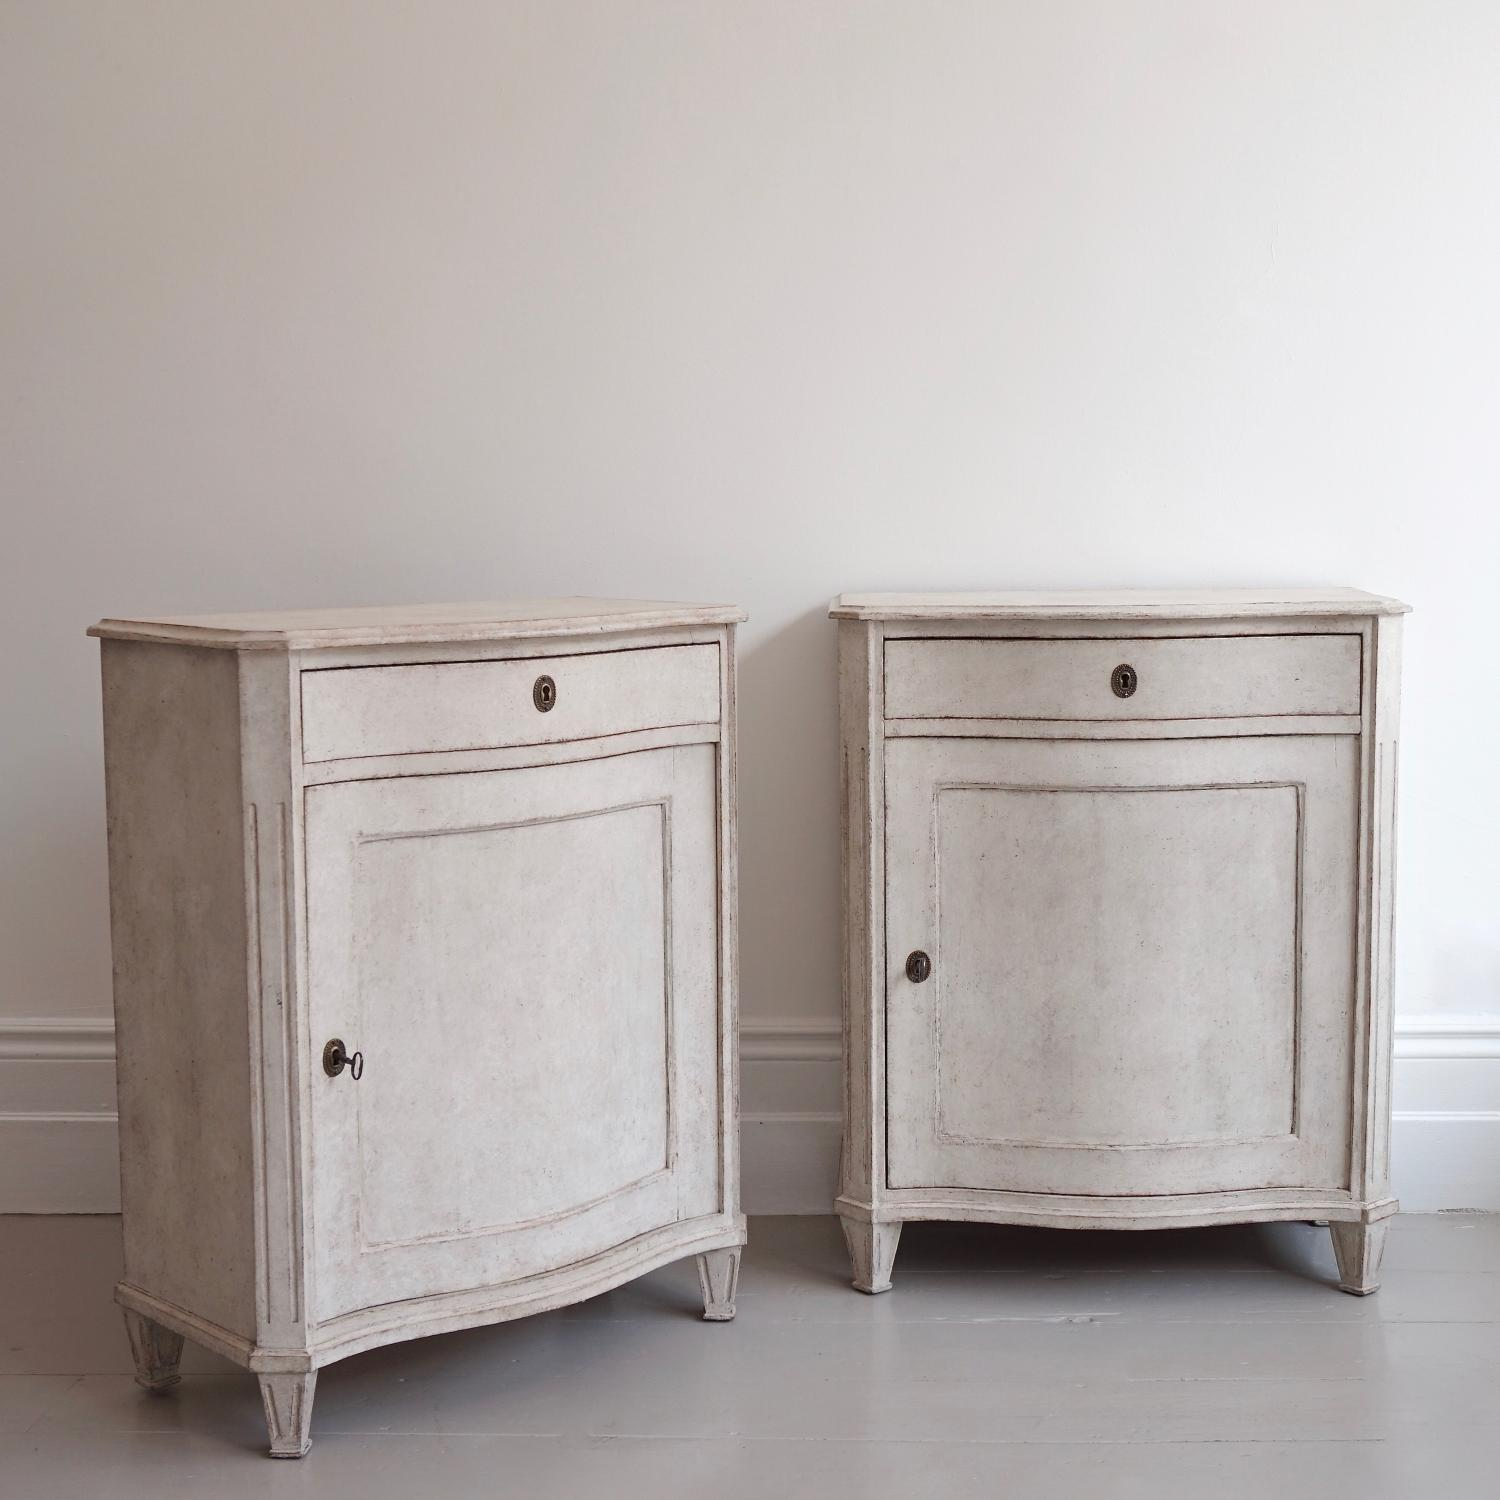 PAIR OF RARE SWEDISH SERPENTINE BEDSIDE CABINETS